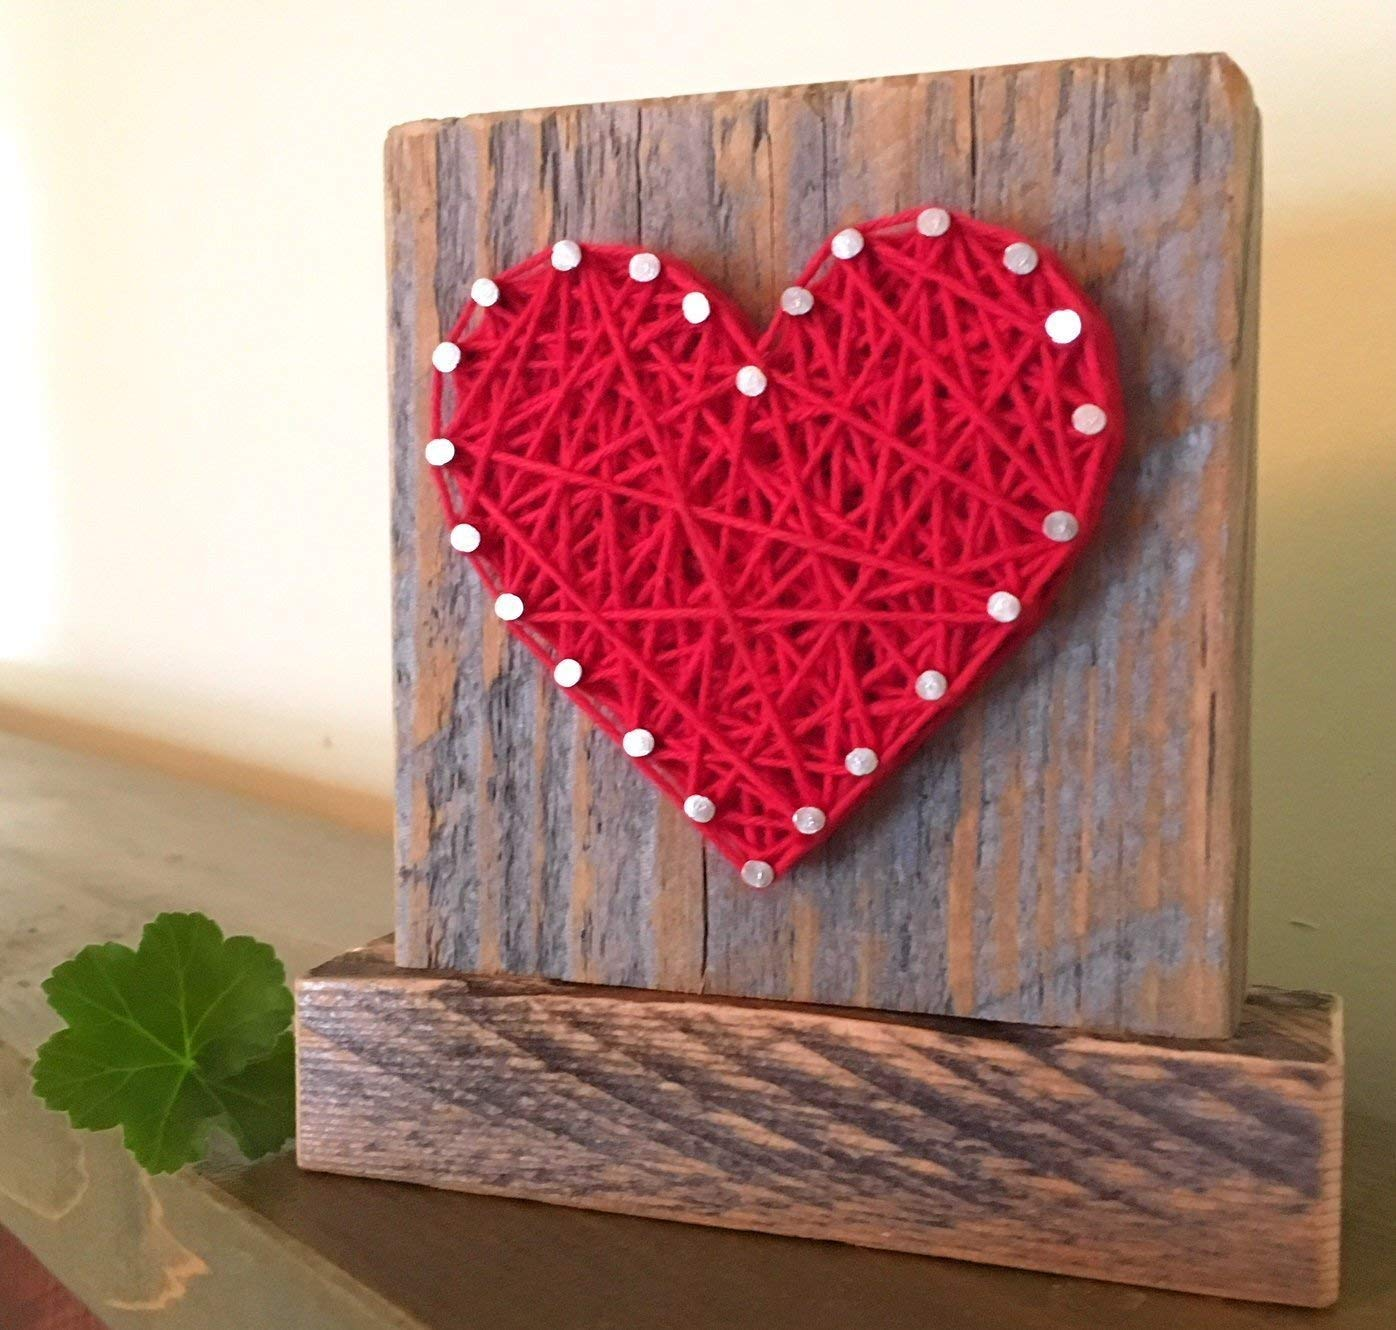 Sweet & small freestanding wooden red string art heart block sign. Perfect for home accents, Wedding favors, Anniversaries, housewarming, teacher, congratulations & just because. by Nail it Art by Nail it Art (Image #1)